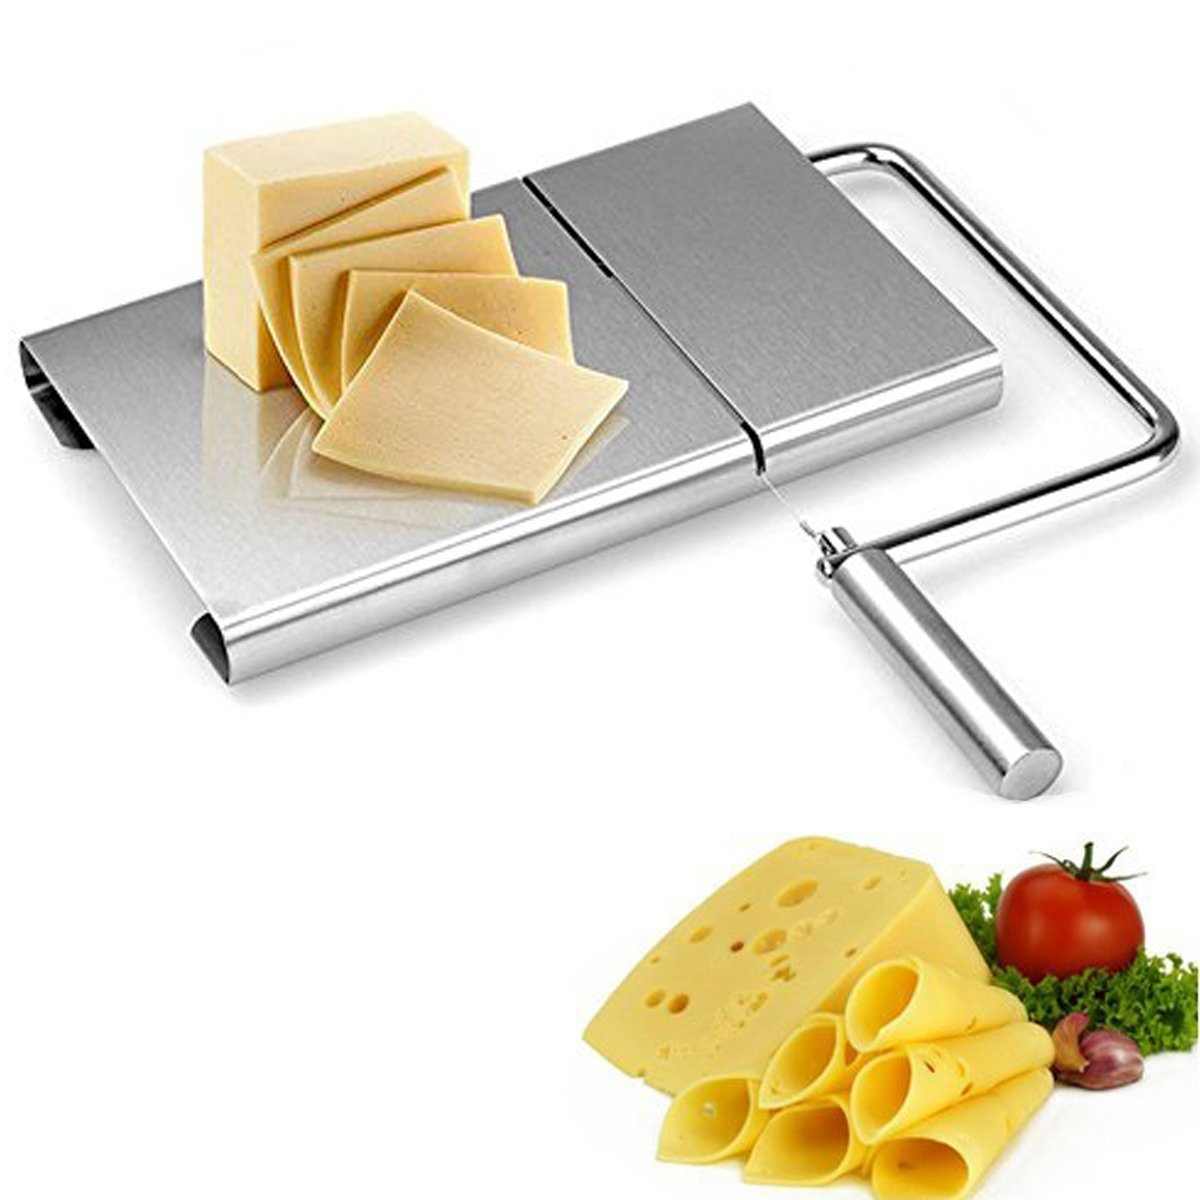 Cheese Slicer Stainless Steel Wire Cutter With Serving Board for Hard and Semi Hard Cheese Butter LIRANK